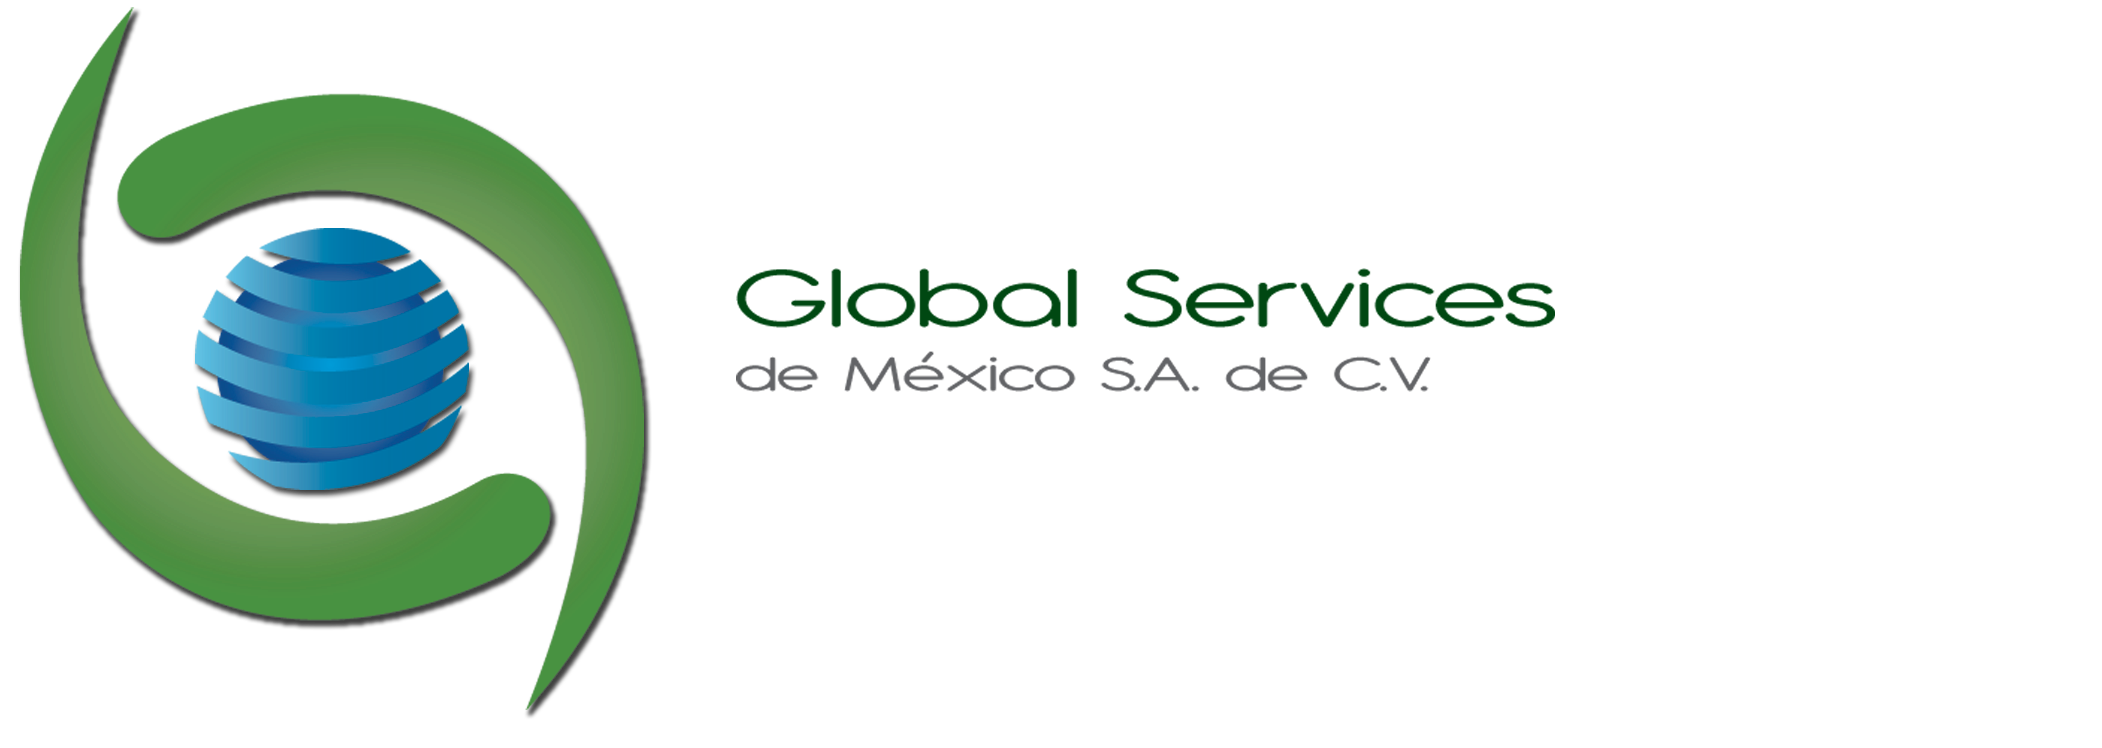 CAFT GLOBAL SERVICES DE MEXICO SA DE CV